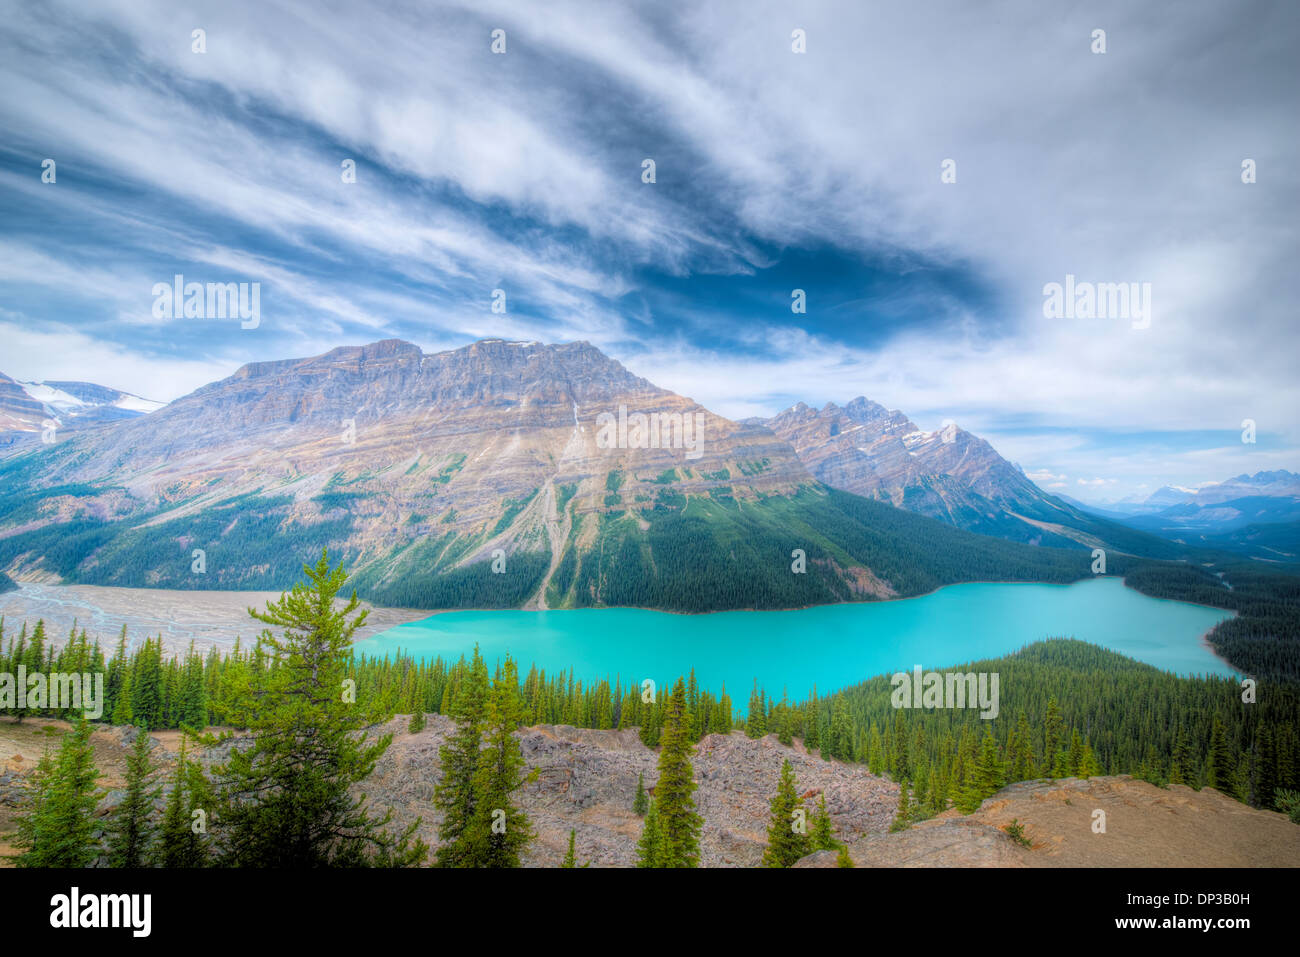 Peyto Lake, Icefields Parkway, Alberta, Canada, Canadian Rockies, Blue color from glacial and limestone silt. - Stock Image